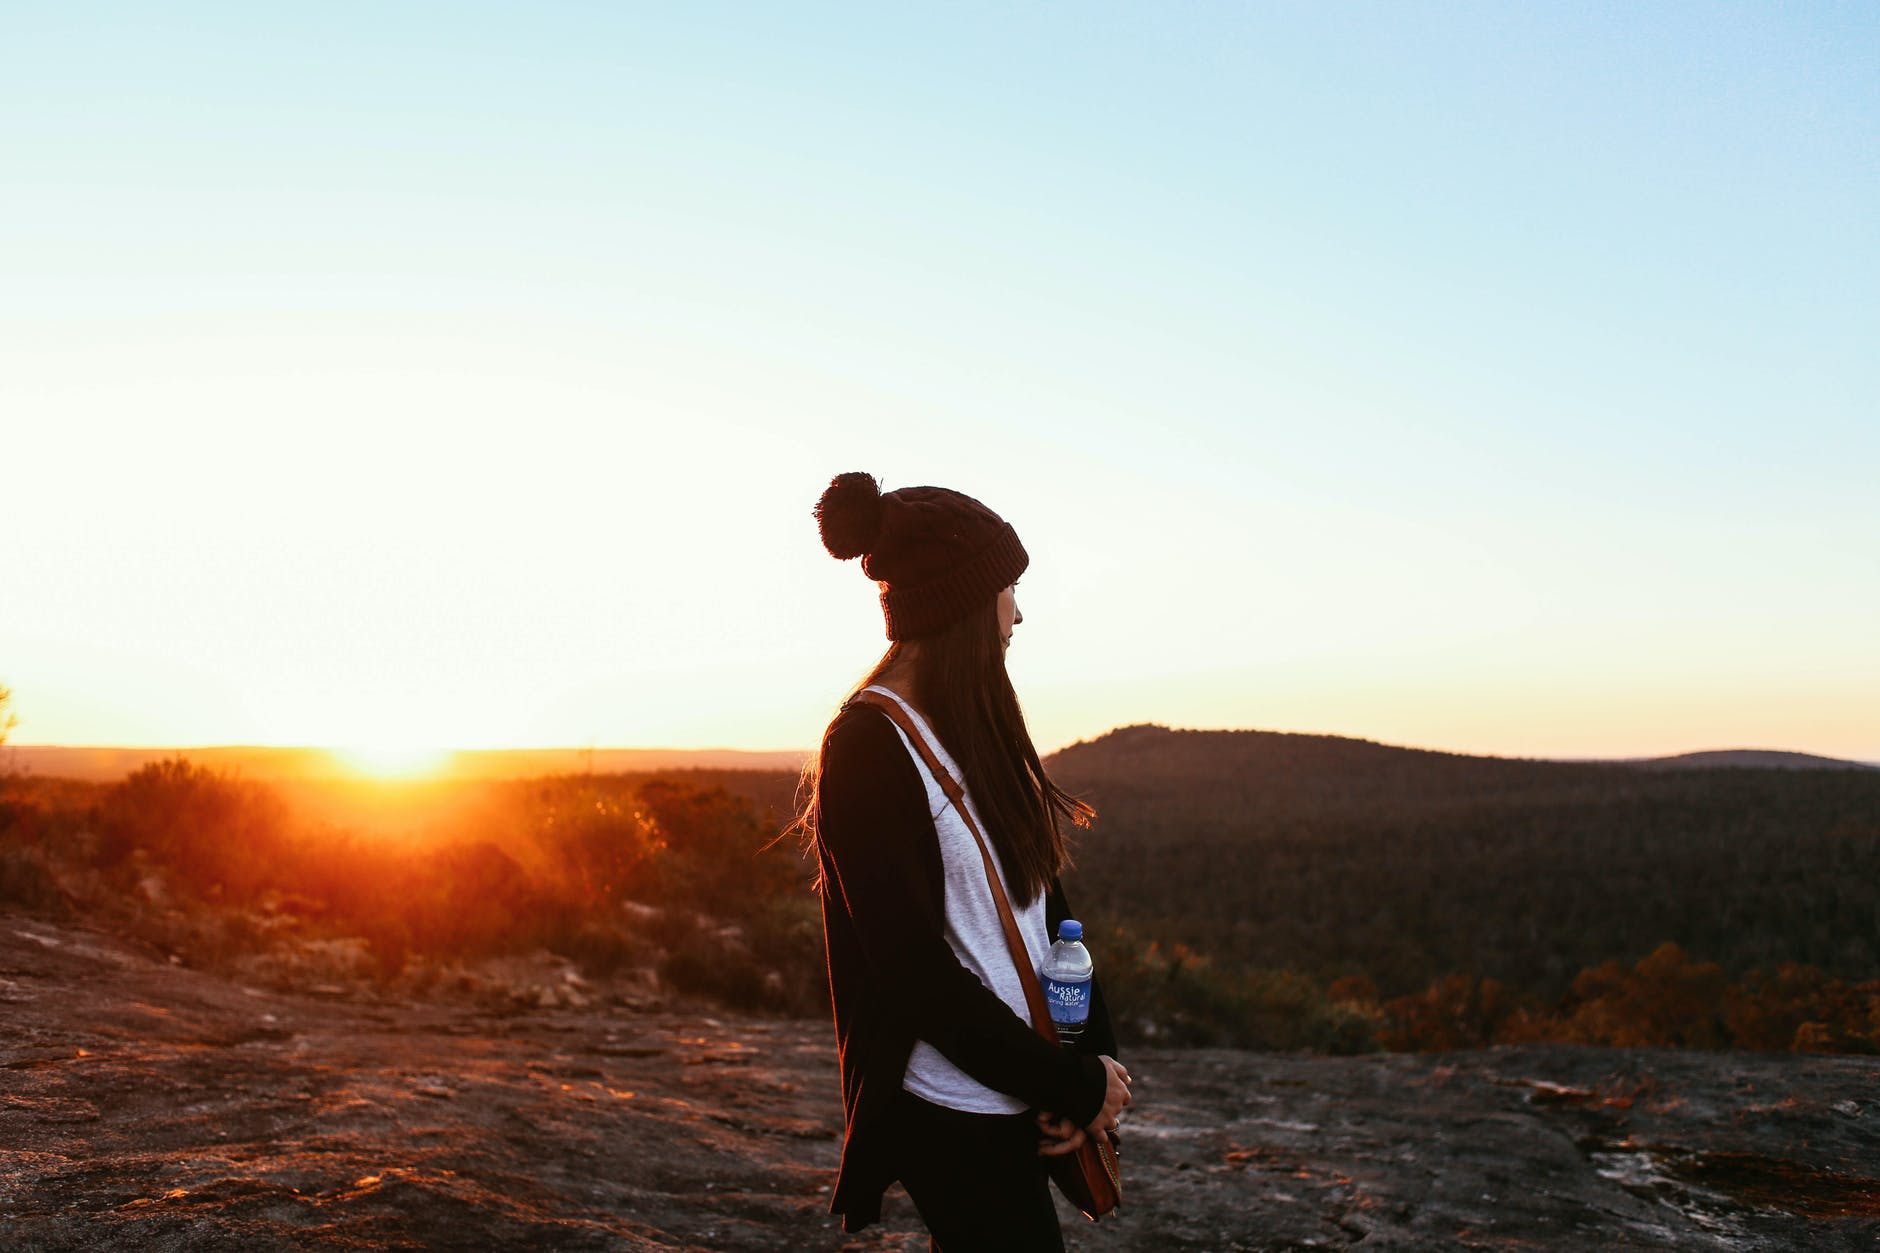 faceless woman standing on hilly valley at sunset